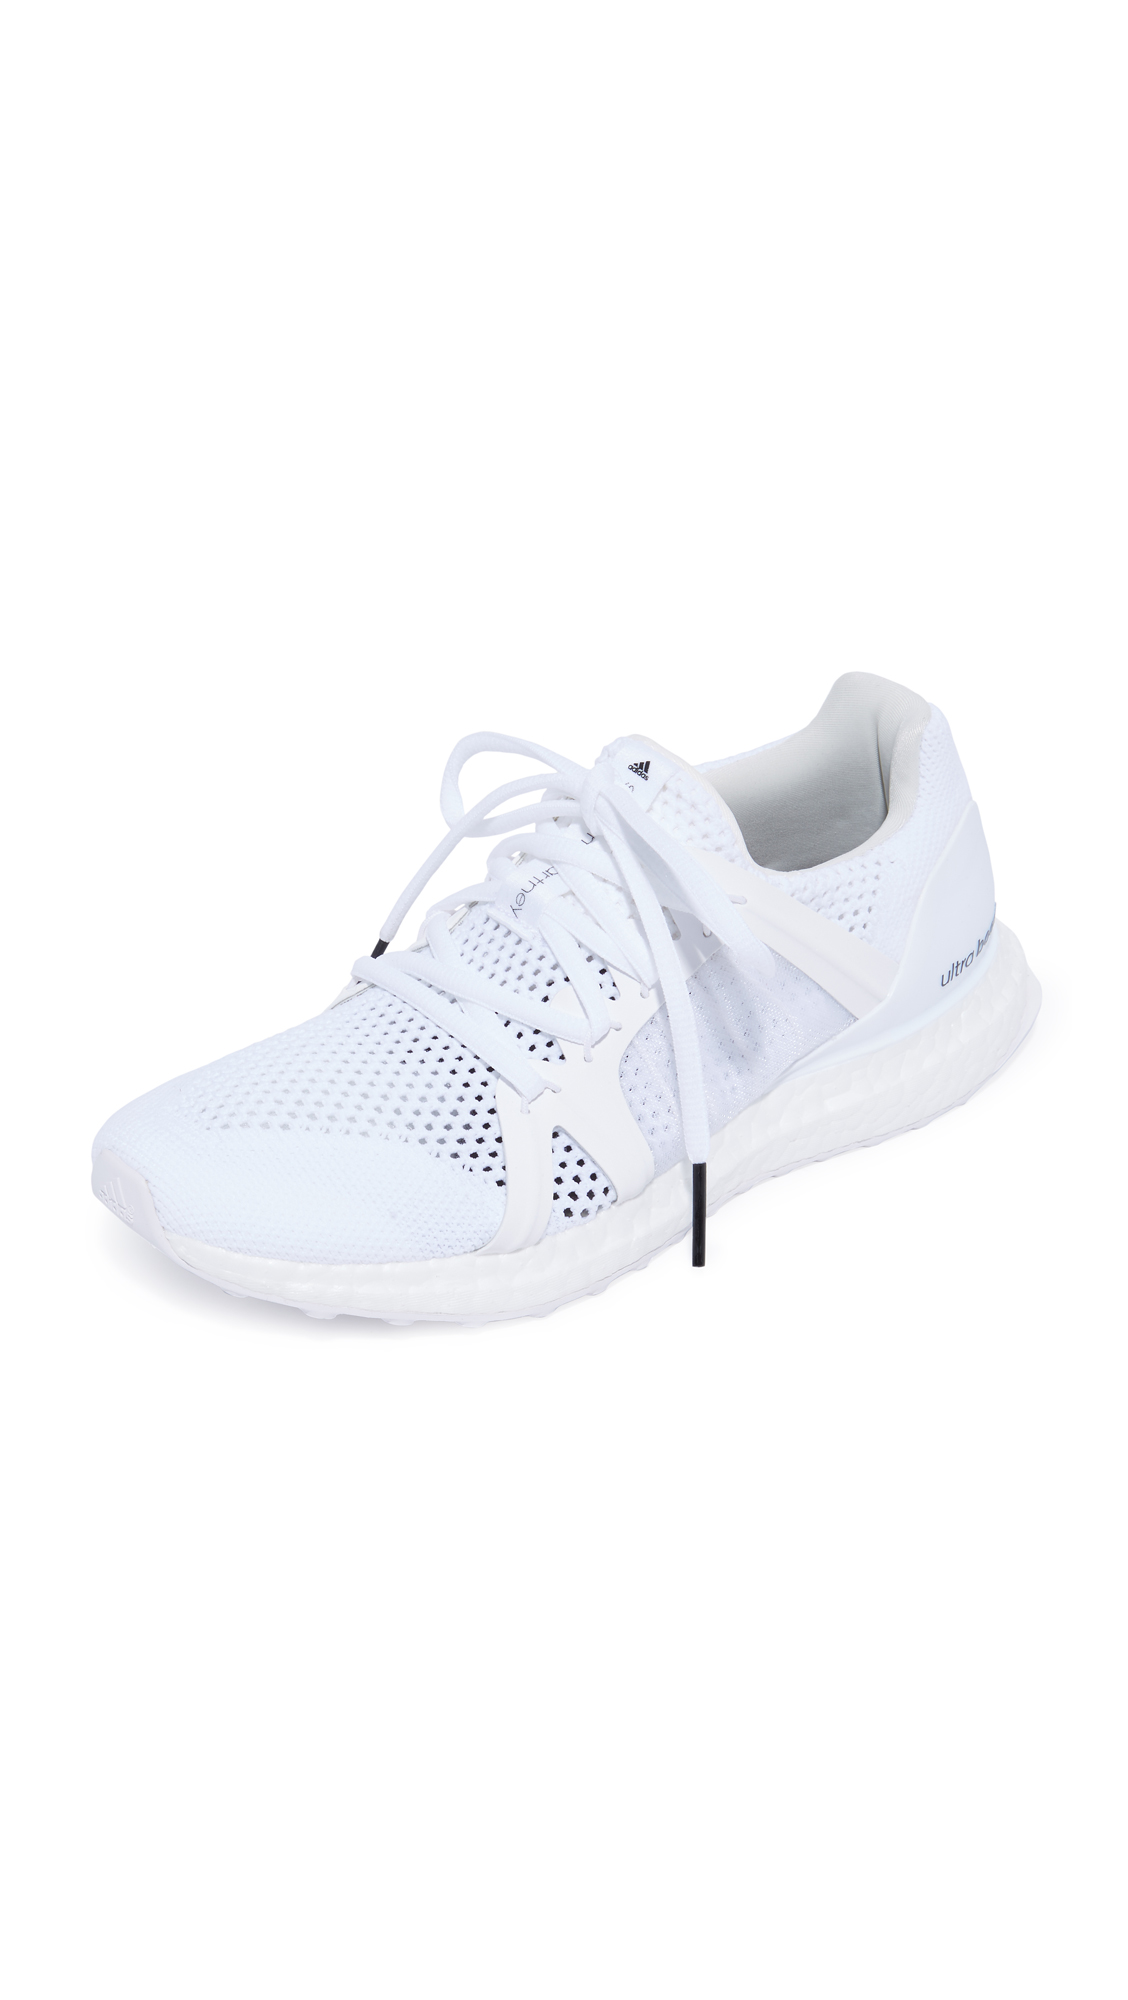 Sporty adidas by Stella McCartney sneakers in a mix of tonal knits. Laces secure the rubber and mesh side panels. A padded collar and footbed add comfort. Textured foam sidewall. Rubber sole. Fabric: Mixed knit. Imported,